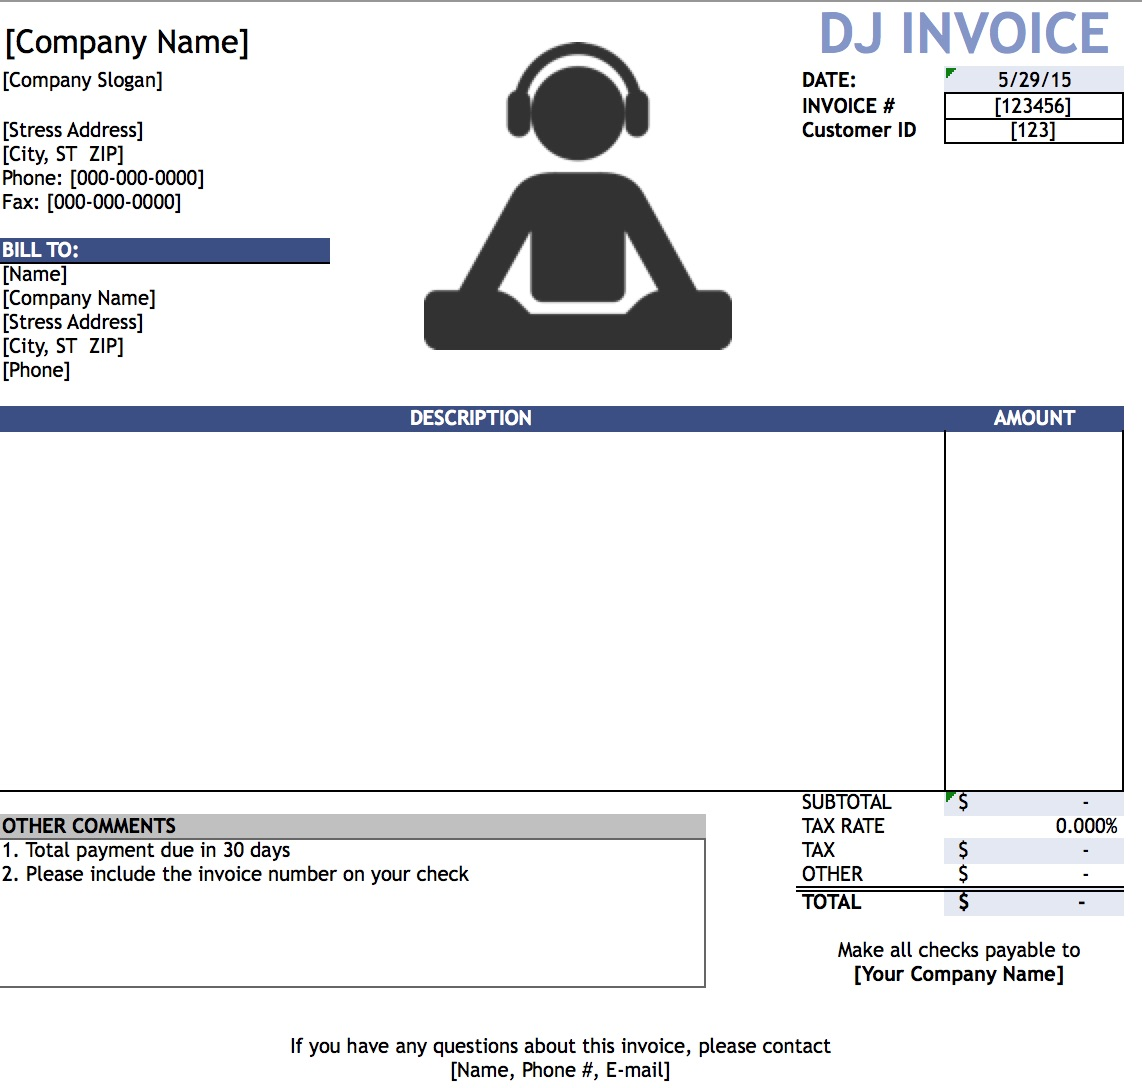 Free DJ Disc Jockey Invoice Template Excel PDF Word Doc - Free invoicing template shop now pay later online stores